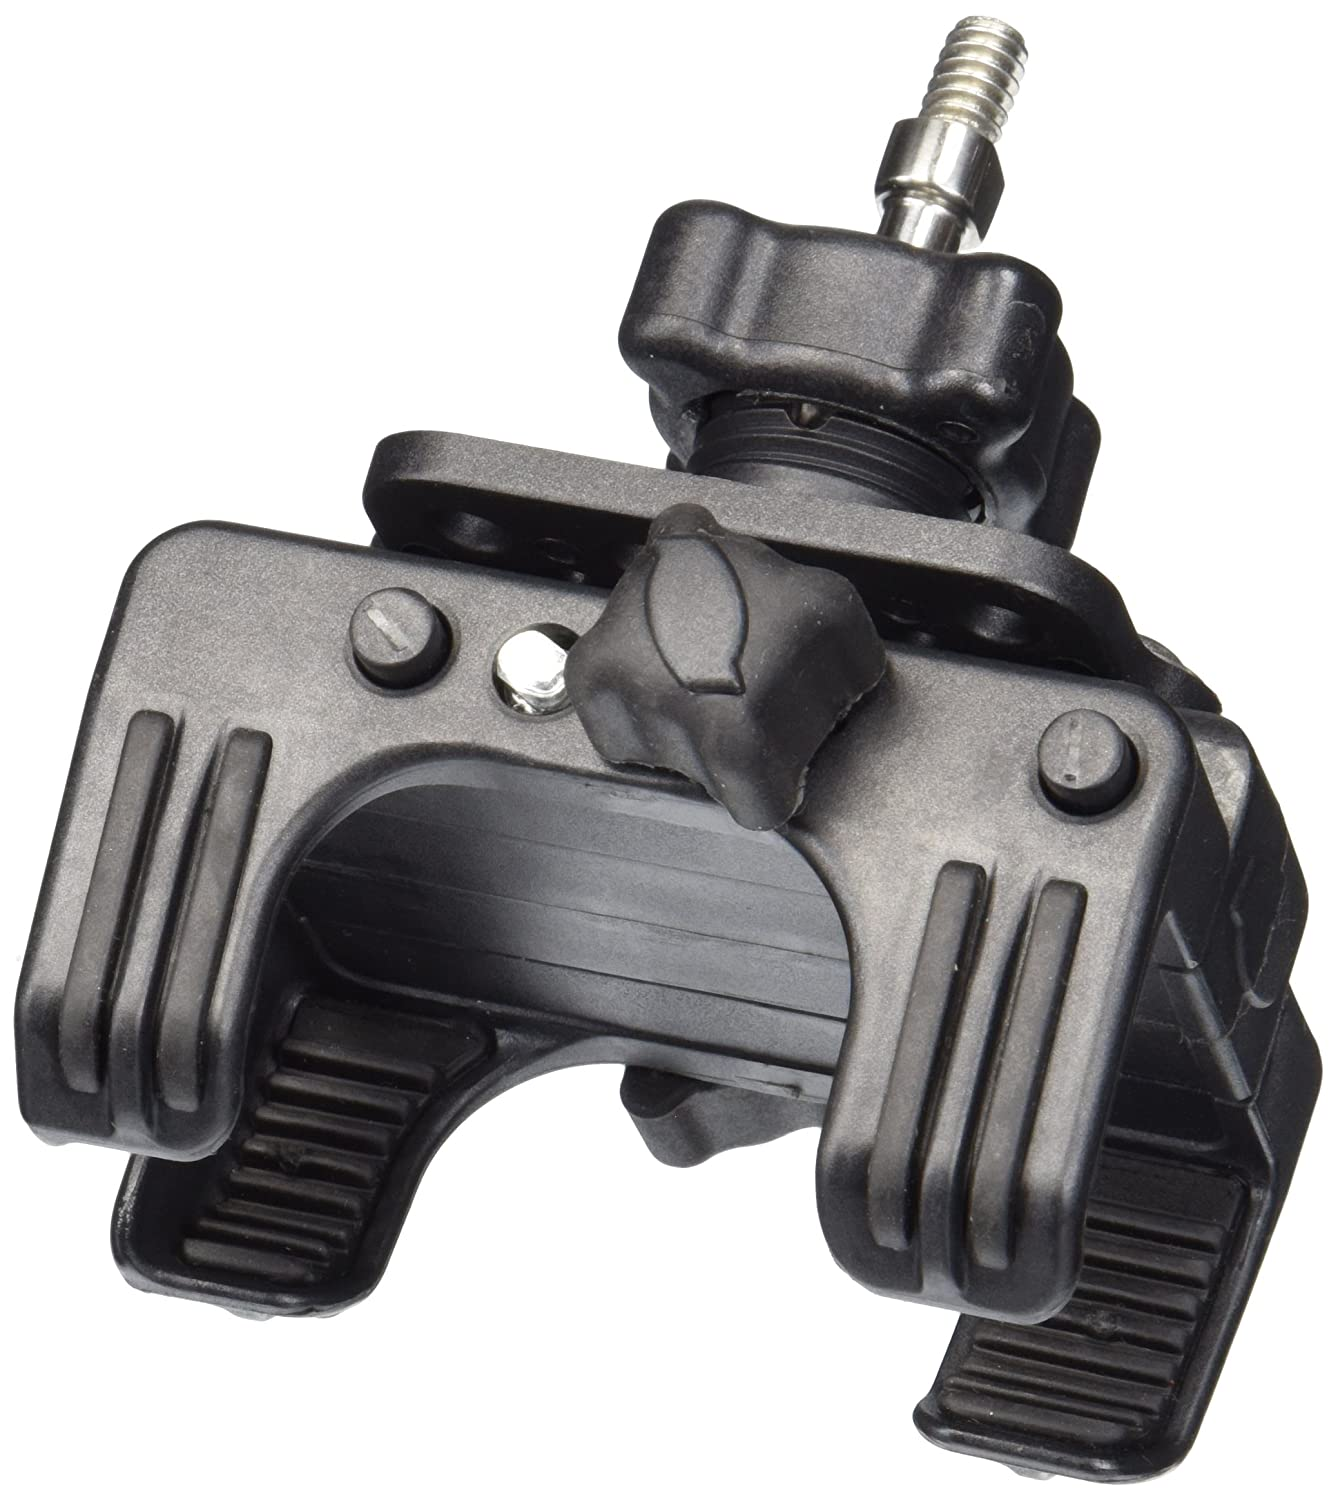 Kuryakyn 1697 Tech-Connect Device Mounting System